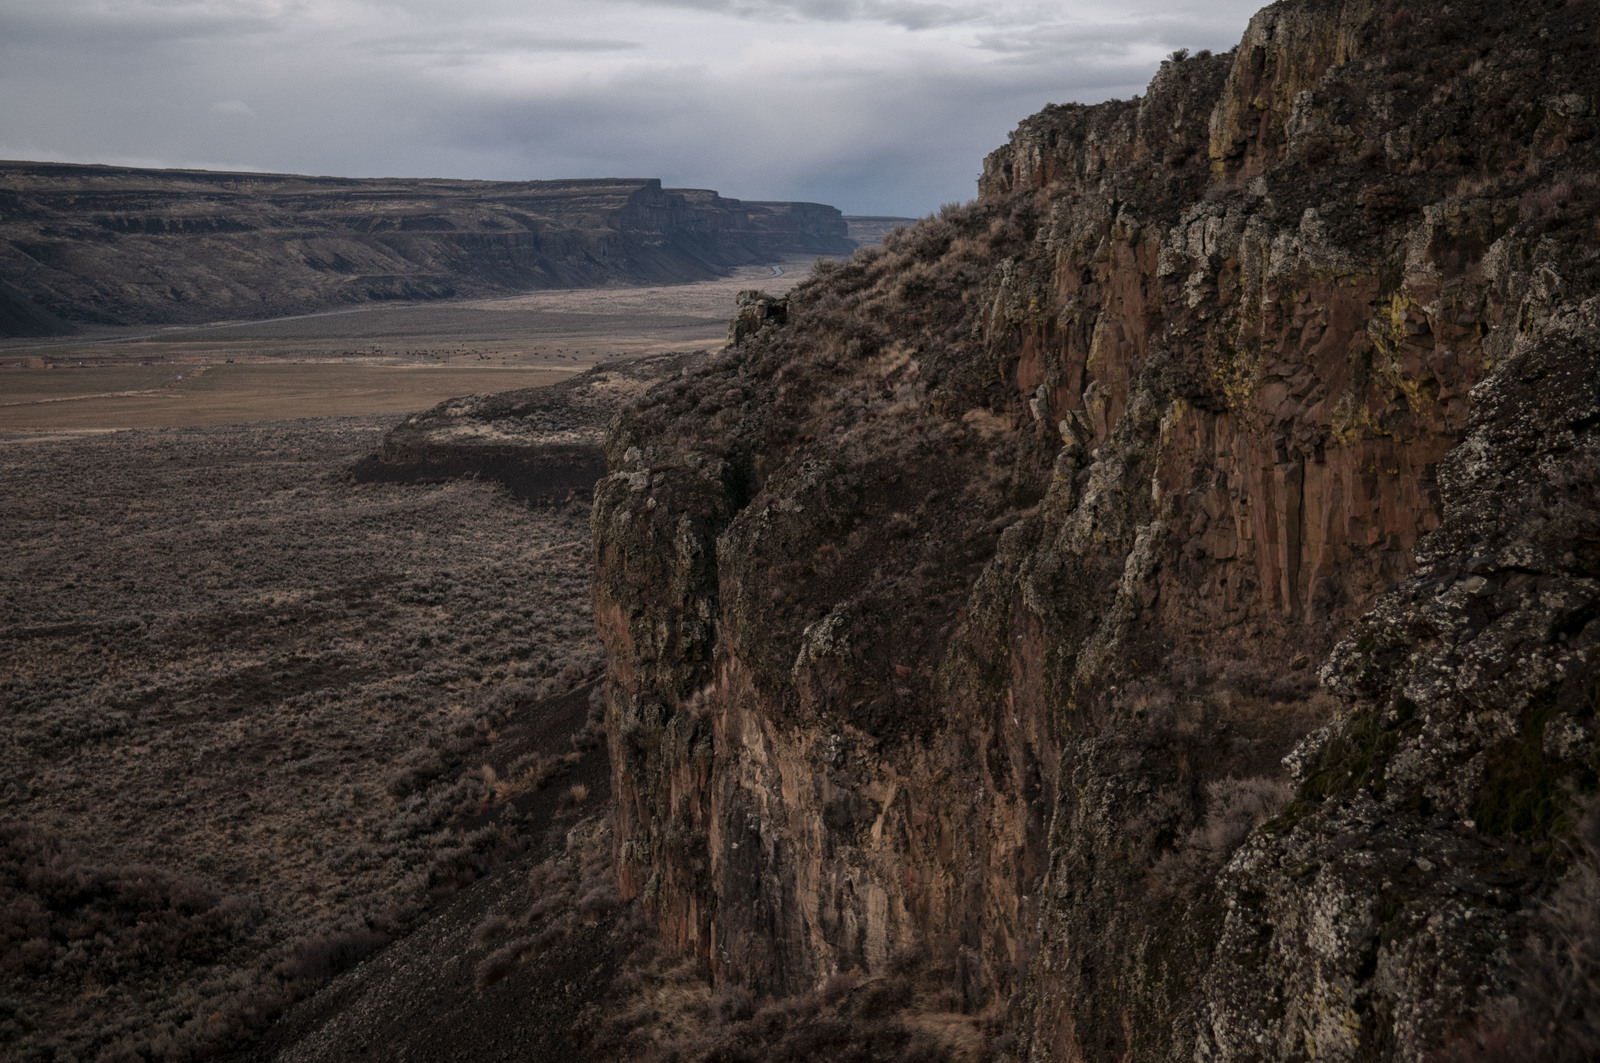 The Moses Coulee landscape near the TNC field station and north of Highway 2 in early winter. Photo by Nikolaj Lasbo.